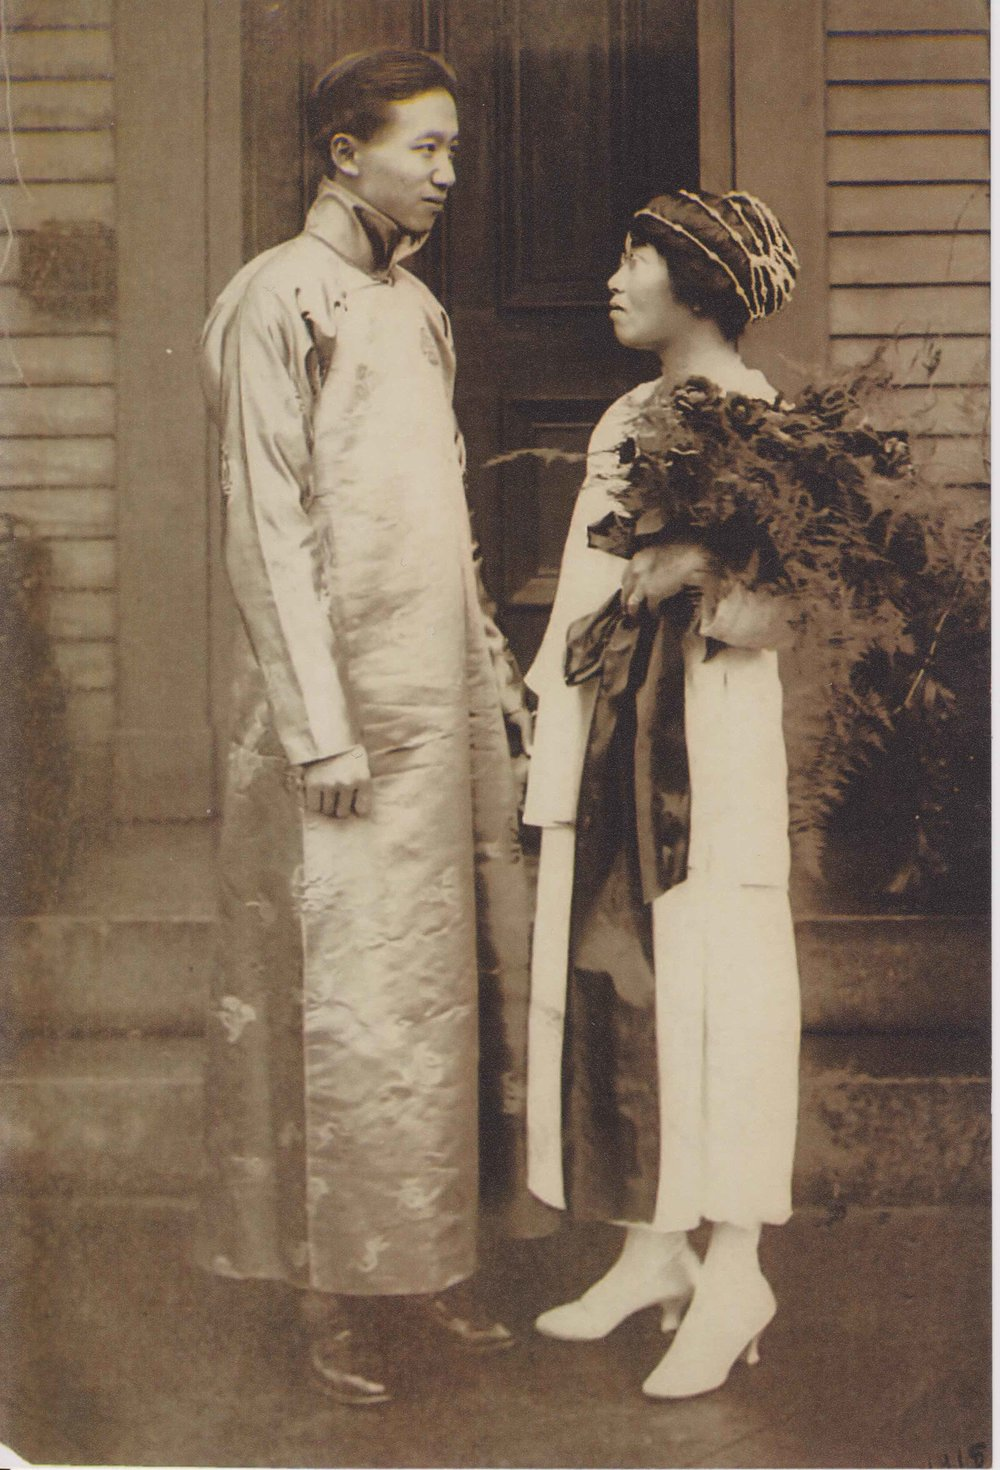 Yang-Mo Kuo and Wai-Tsu New in 1918. Courtesy of Sheila Guo (Yang-Mo Kuo's granddaughter) .